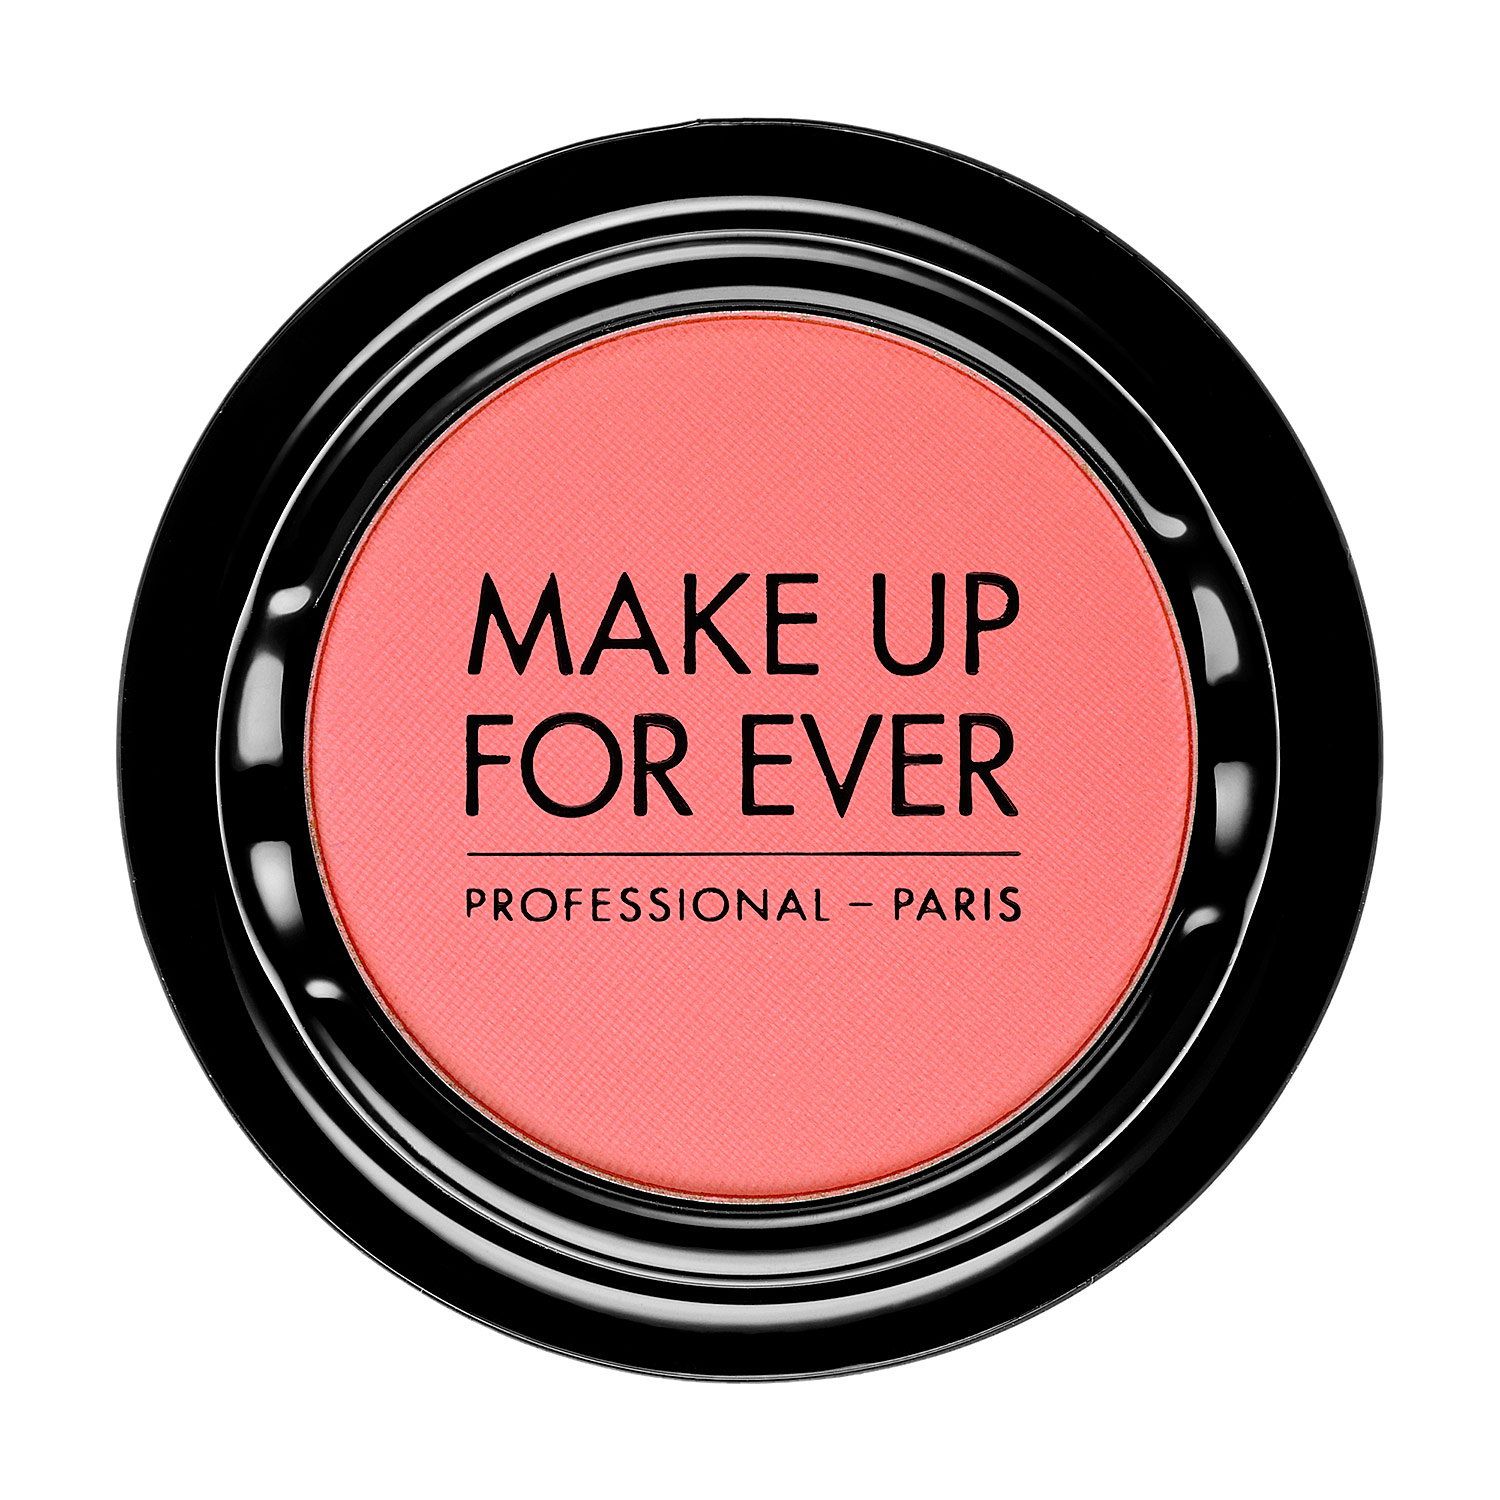 <p>Deep Complexions: Make Up For Ever Artist Shadow Eyeshadow and Blush in M856</p>